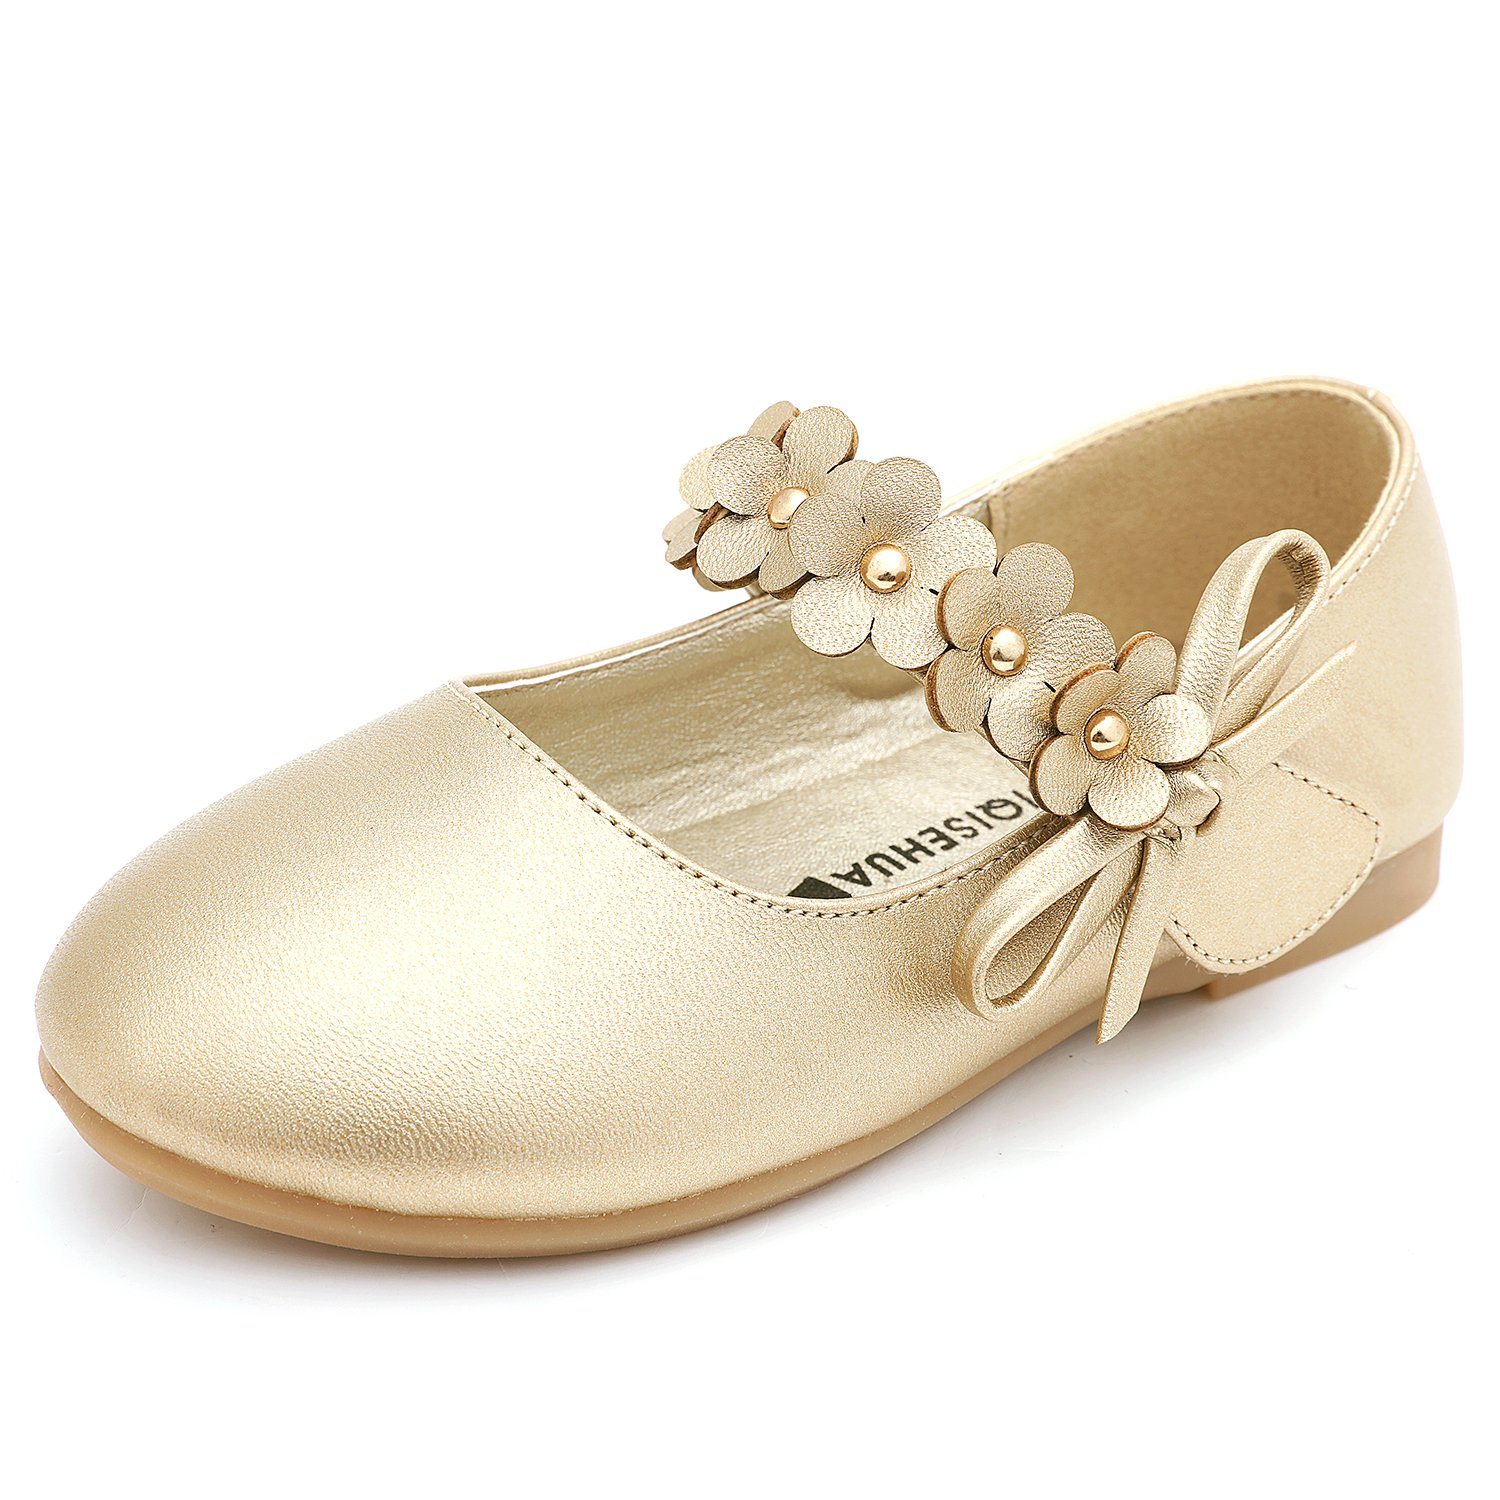 UBELLA Girls Strap Flower Mary Jane Shoes Ballet Flats Wedding Dress Shoes (Toddler/Little Kids